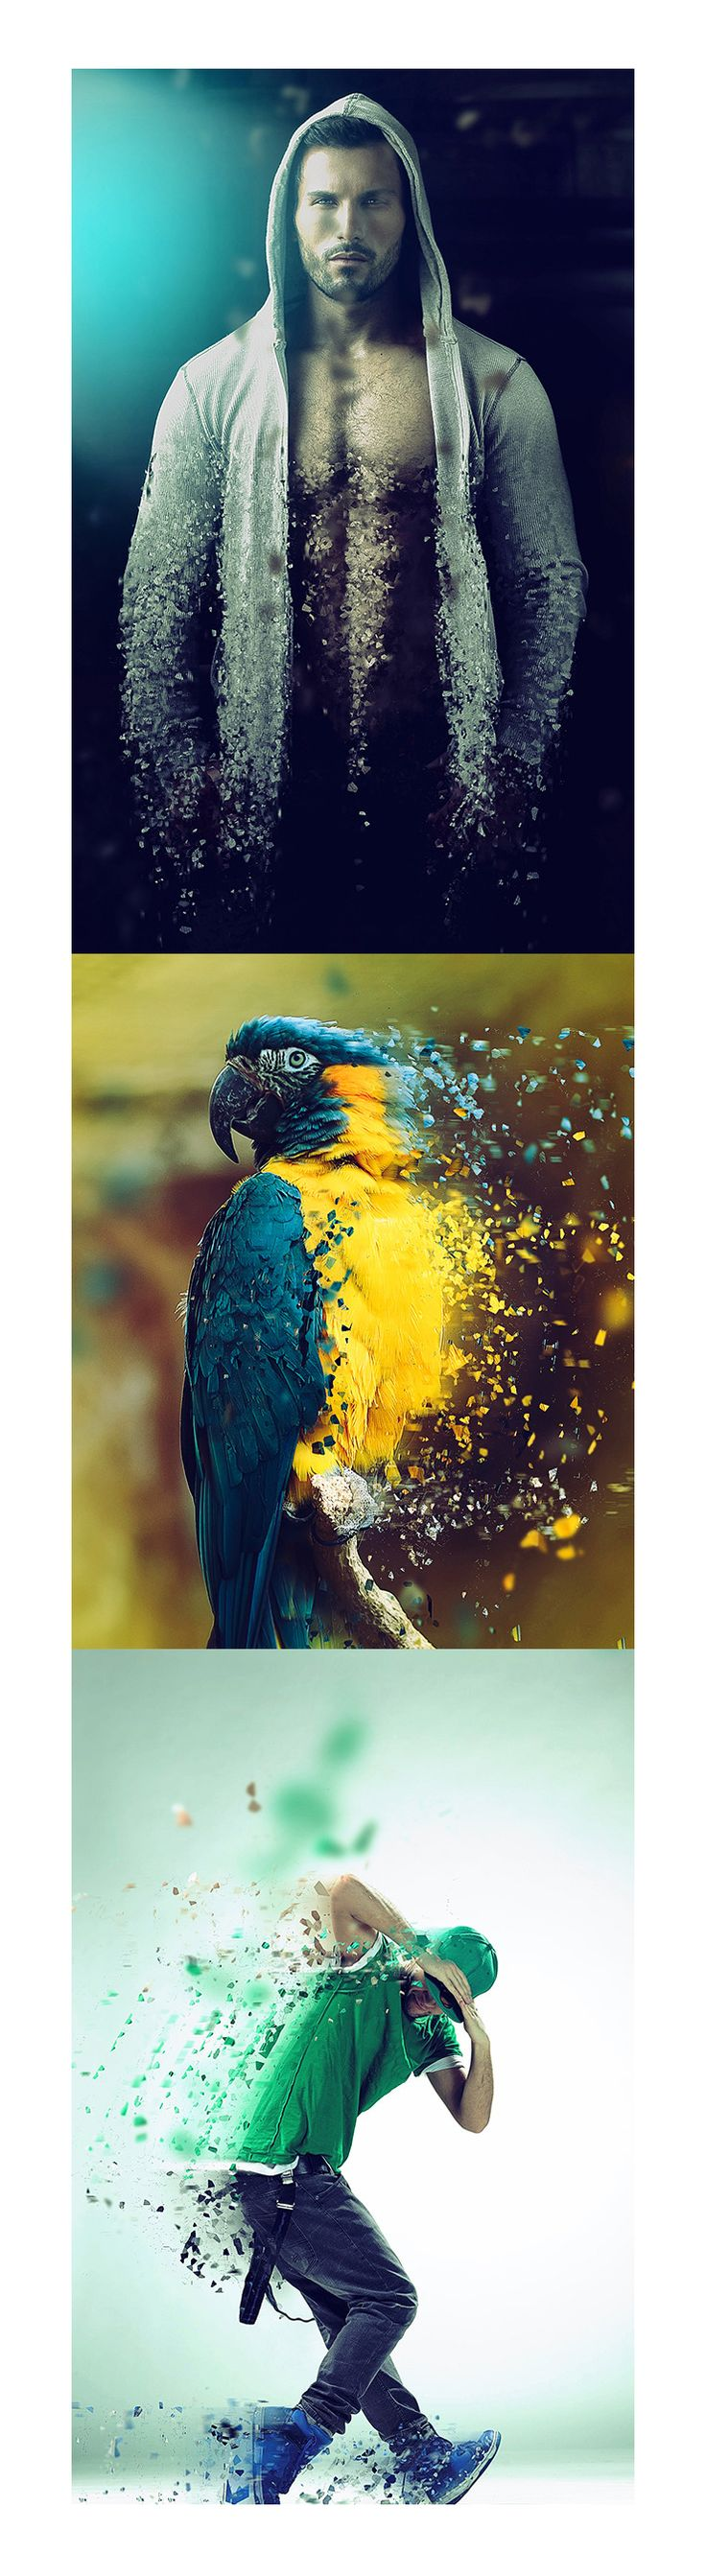 12 Mind Blowing Photoshop Actions That Transforms Any Image into a Piece of Art